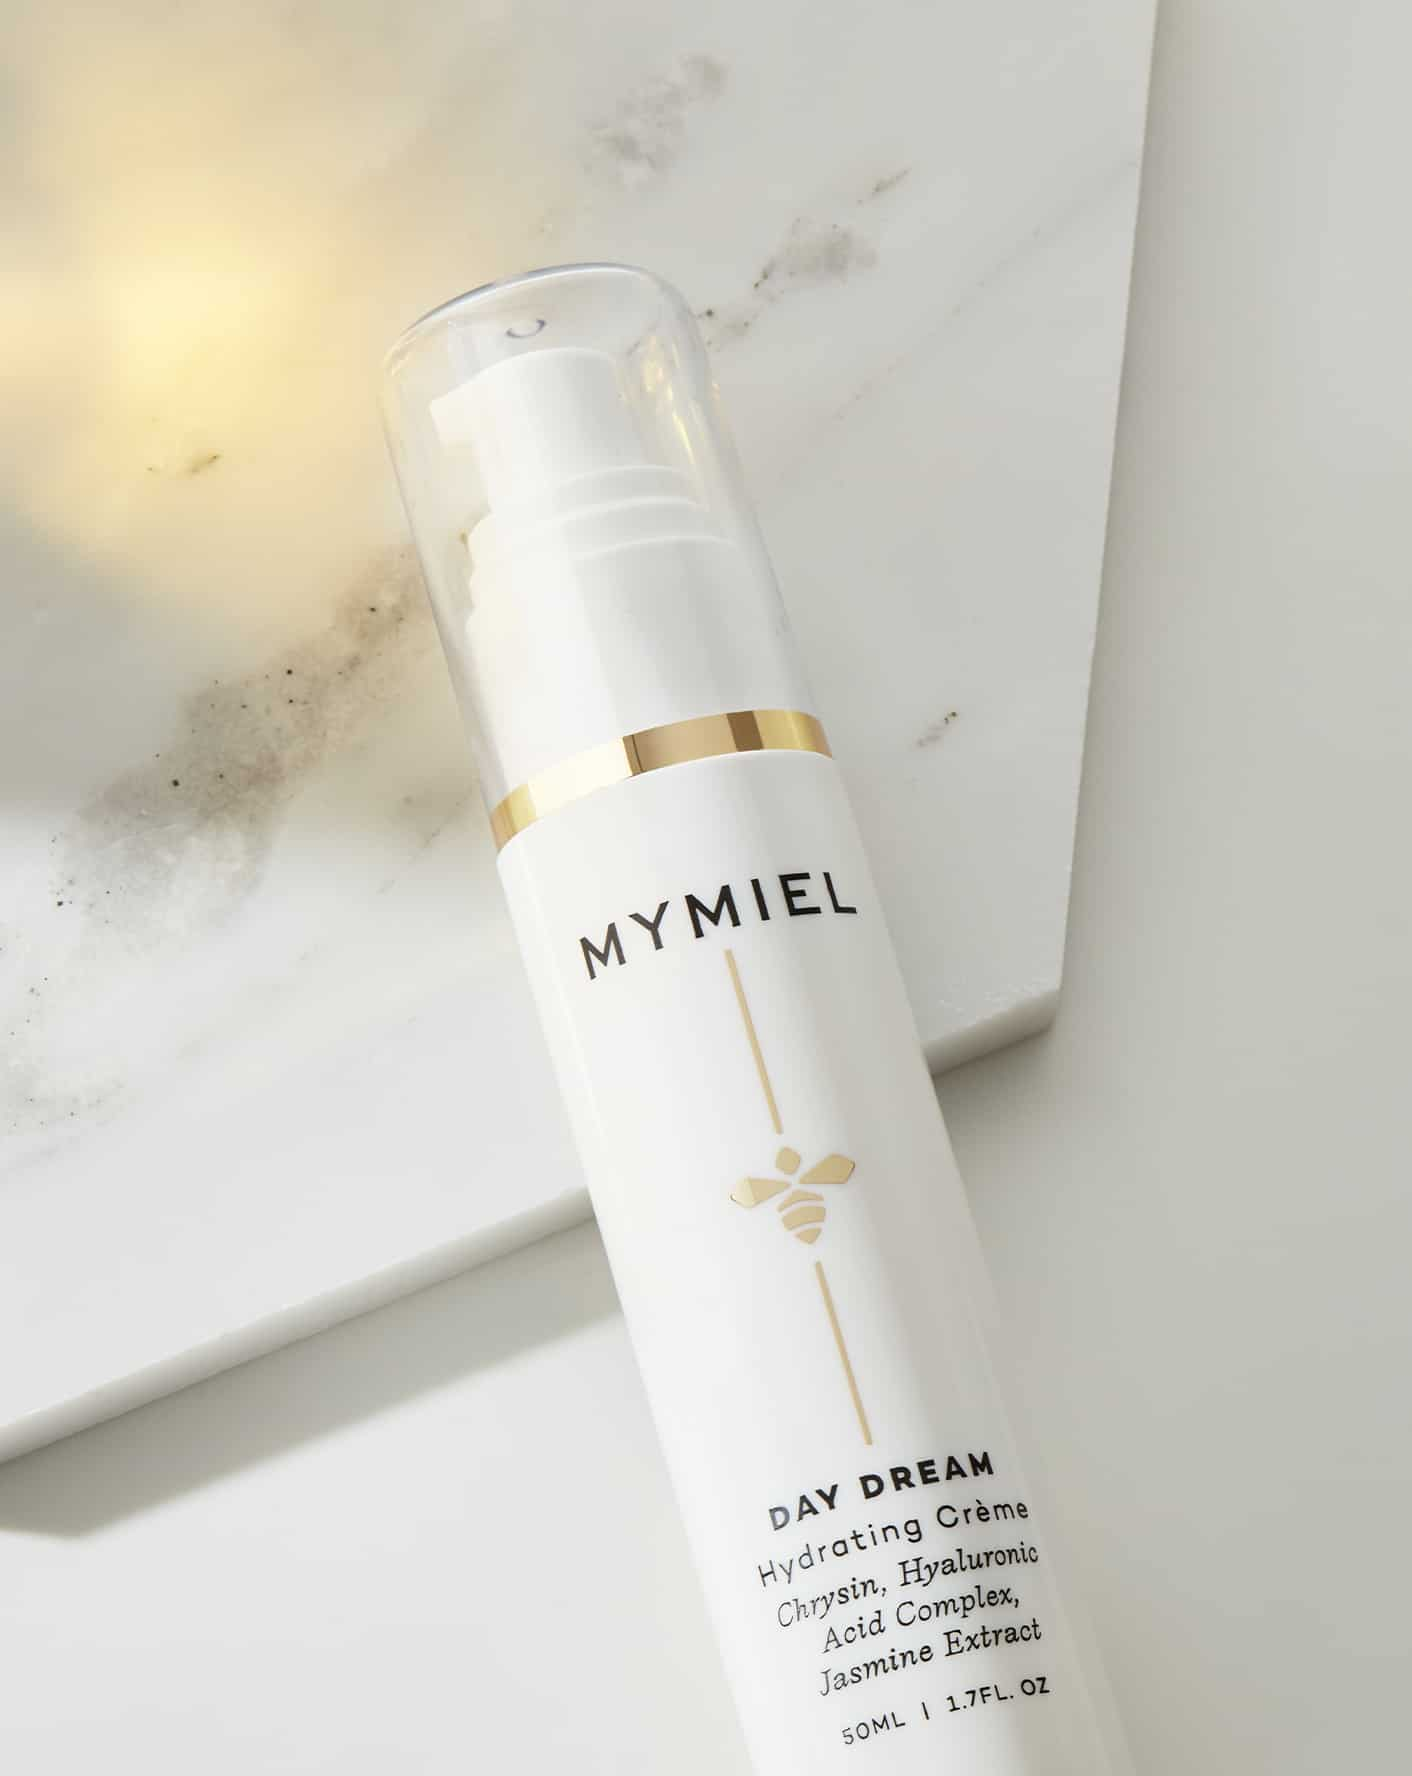 Day-Dream-Hydrating-Cream-MyMiel_2019-12-21_mark-weinberg_0171